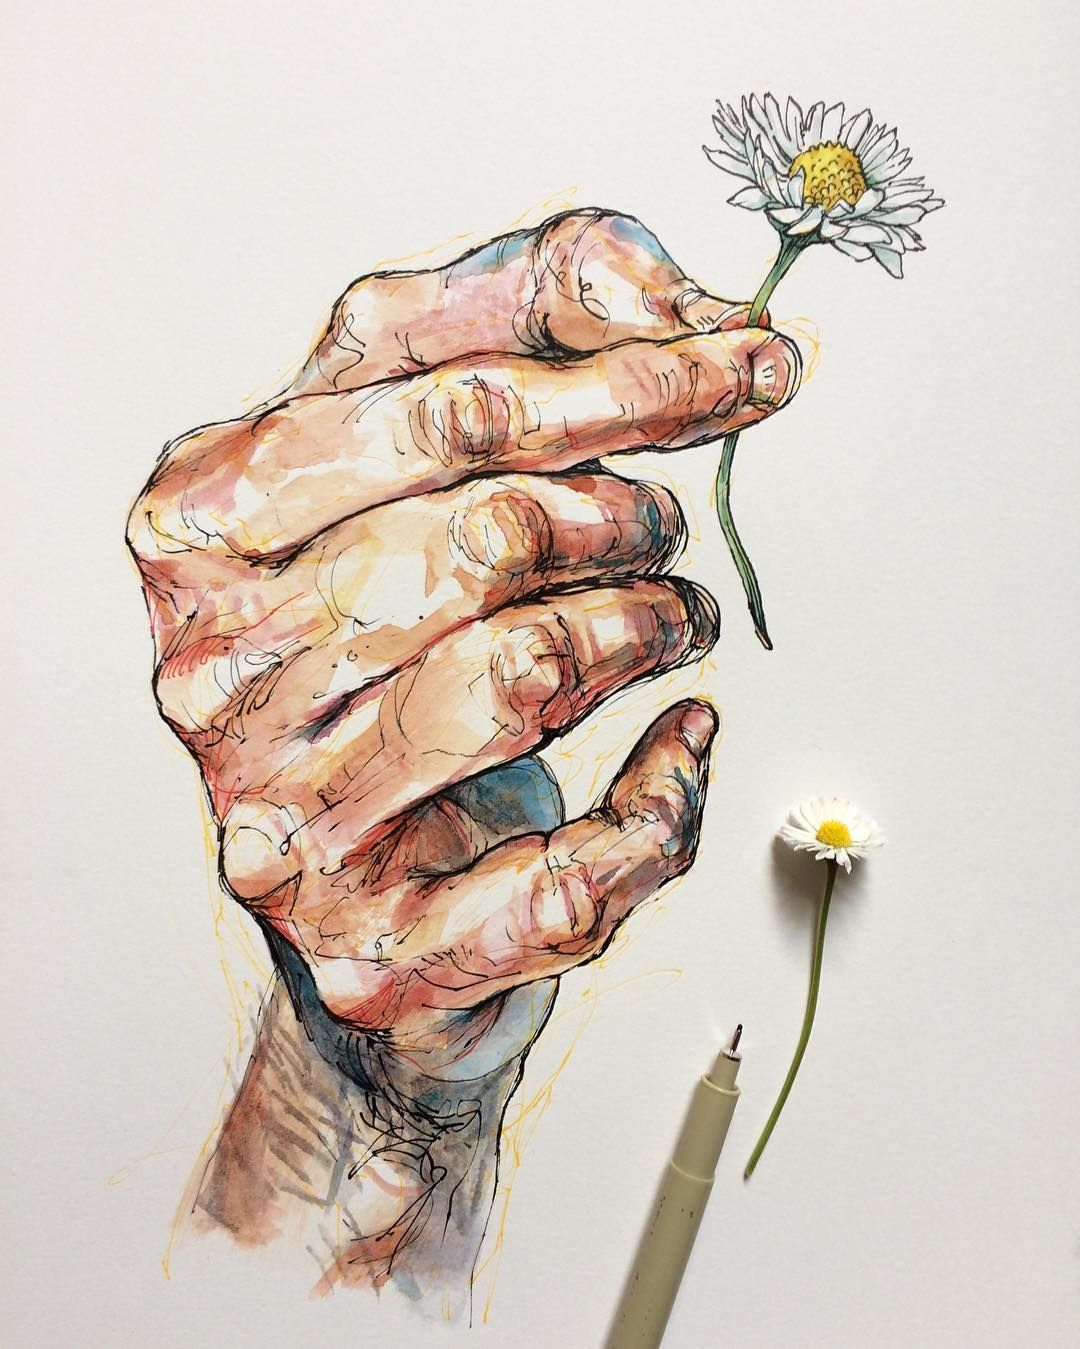 Sensual drawings of gnarled hands touching nature monday insta illustrator the creators project